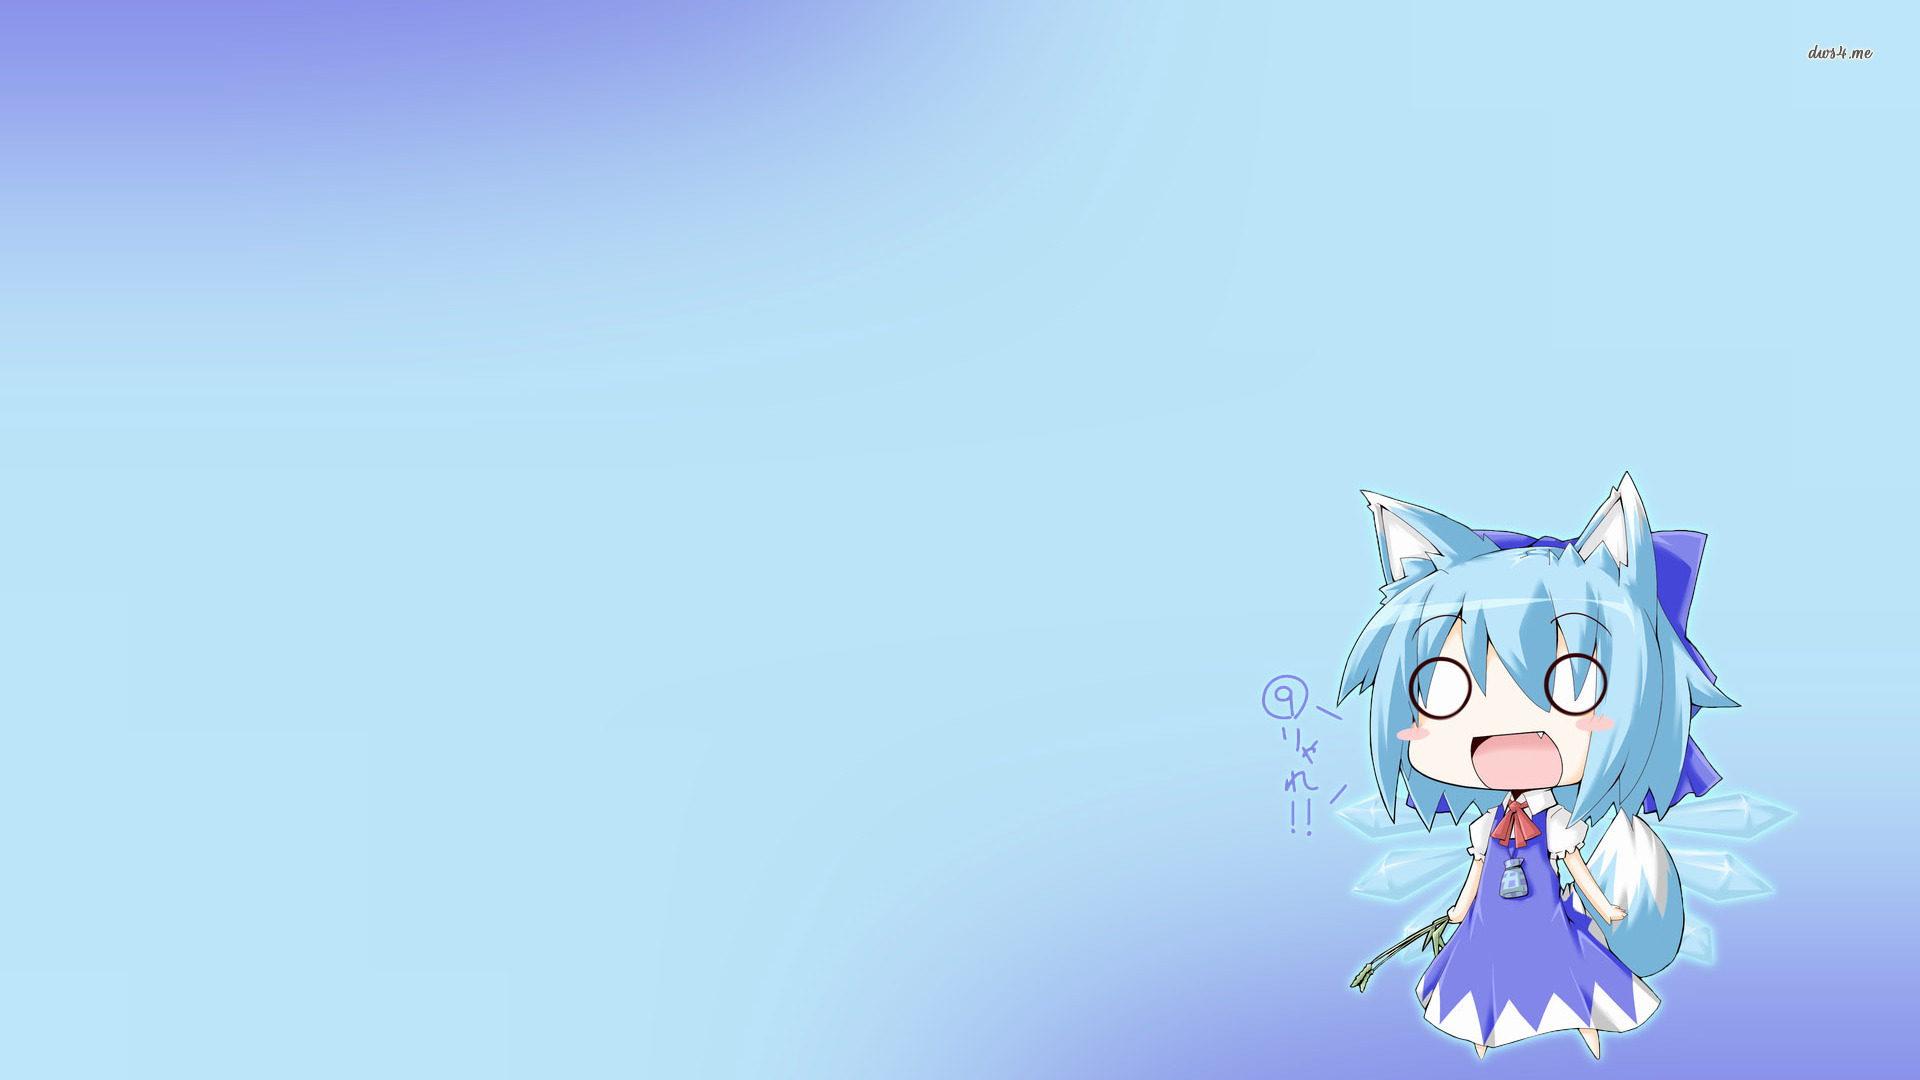 Touhou Cirno Simple HD Wallpapers, Desktop Backgrounds, Mobile 1920x1080